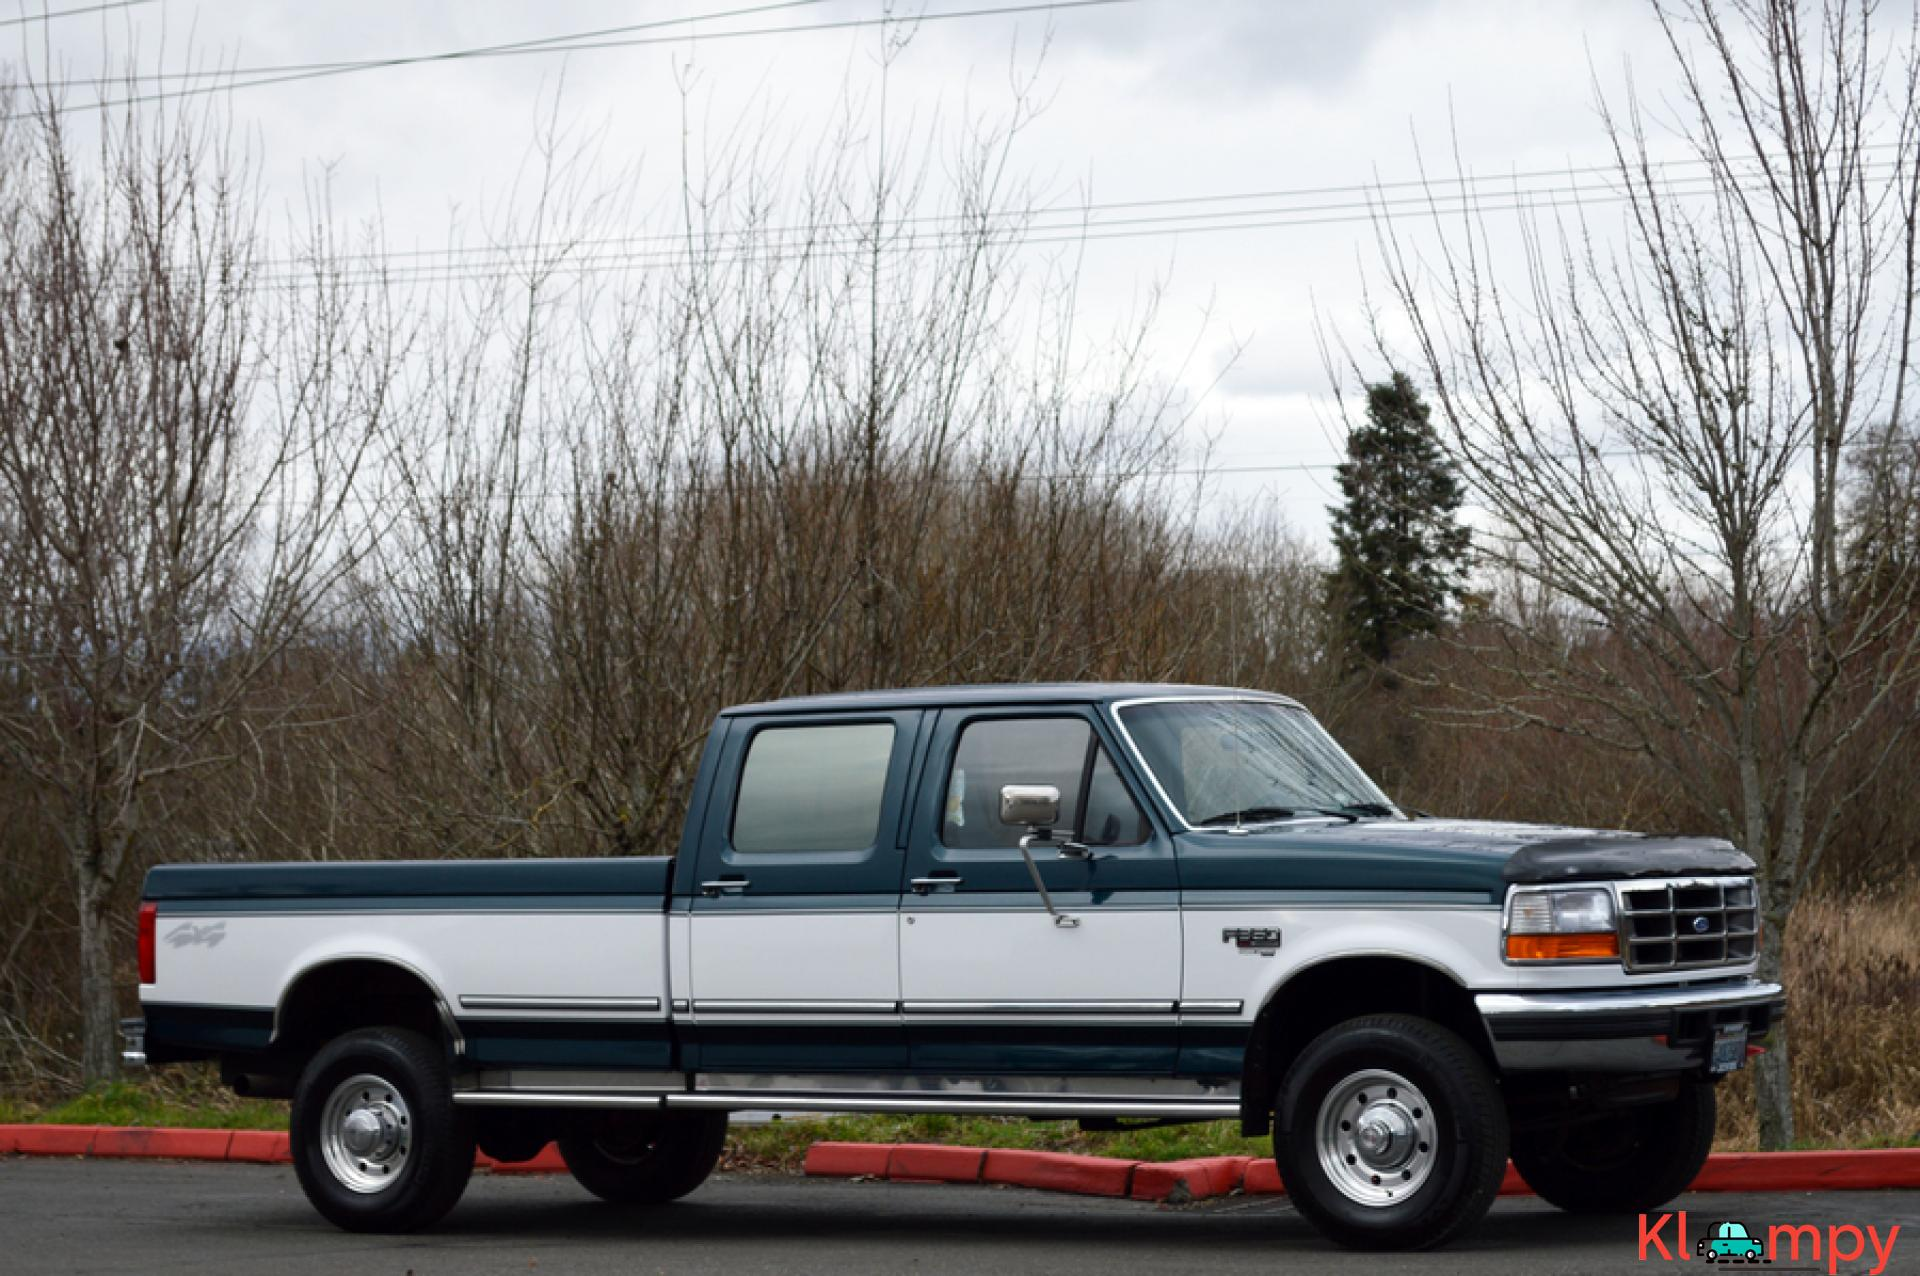 1997 FORD F-350 CREW CAB LONG BED 4WD 7.3L - 2/20